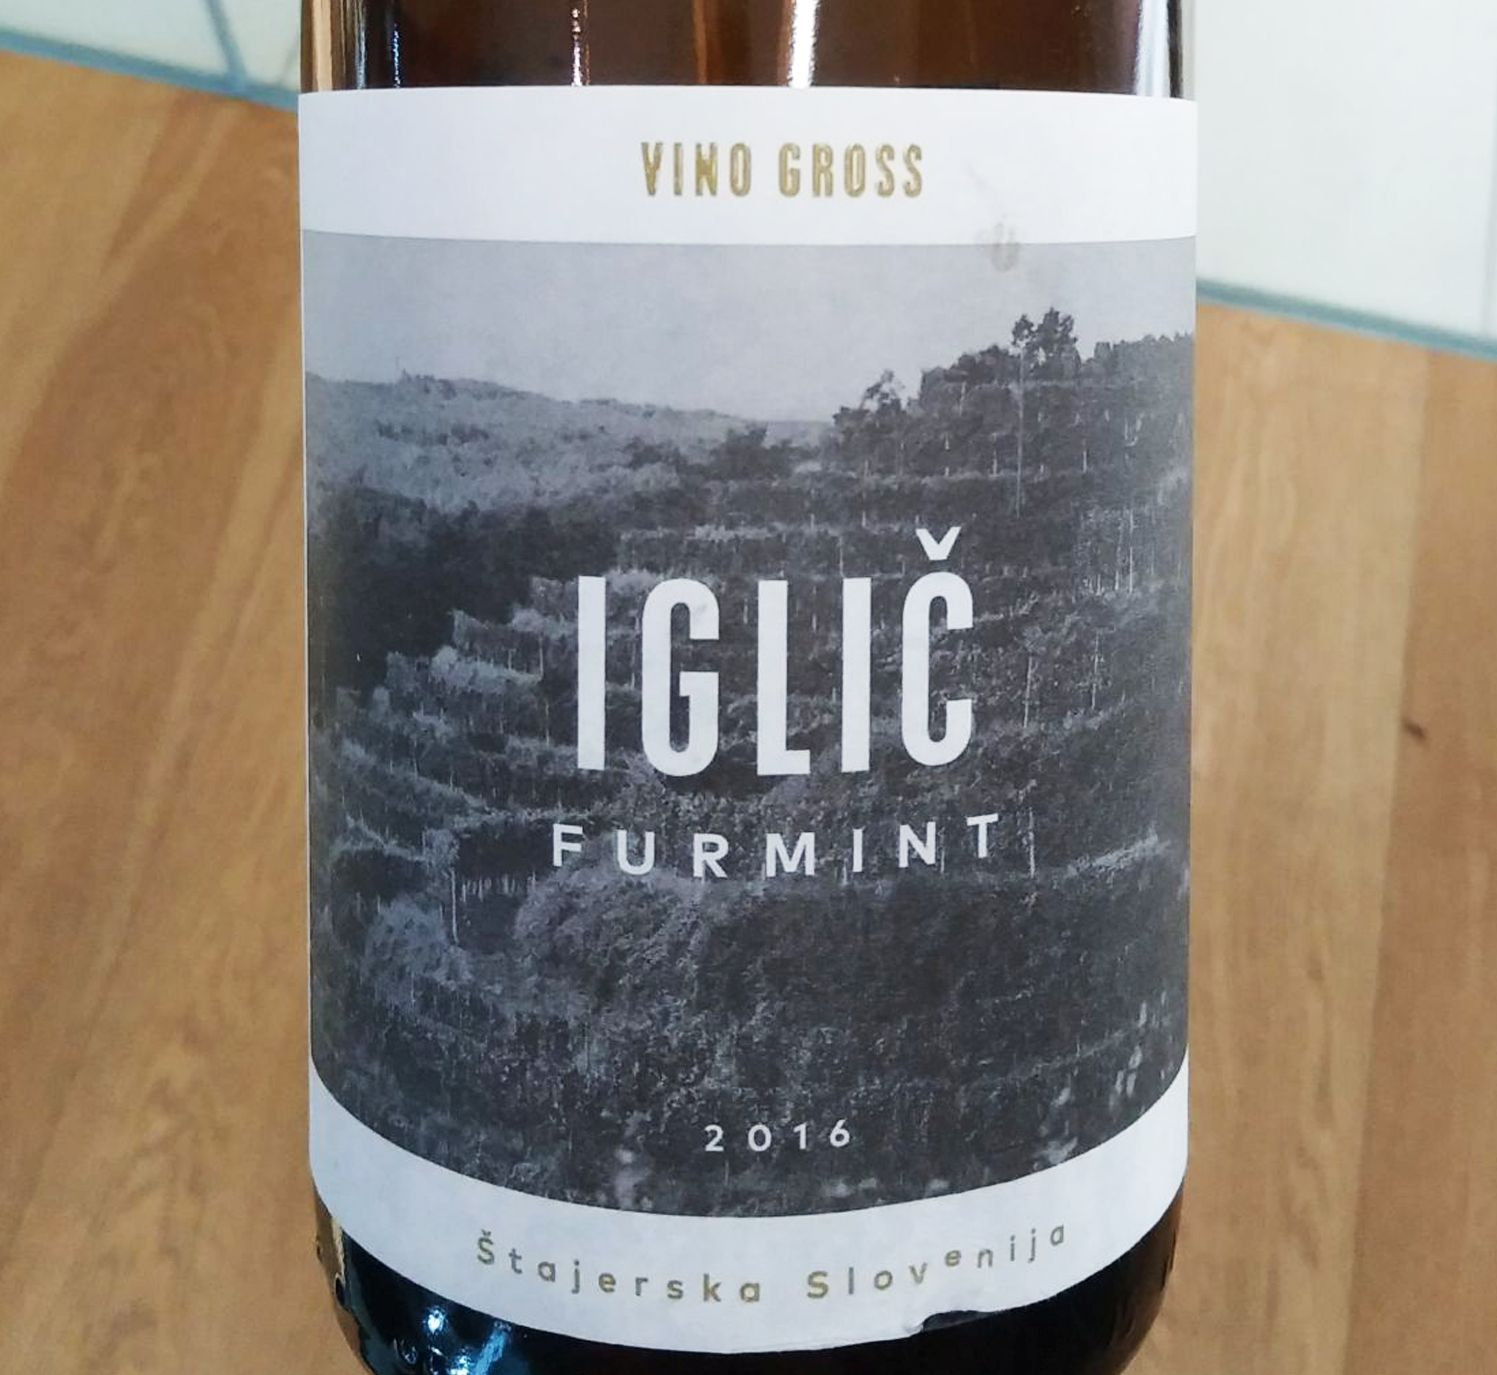 A bottle of Iglič Furmint 2016 wine